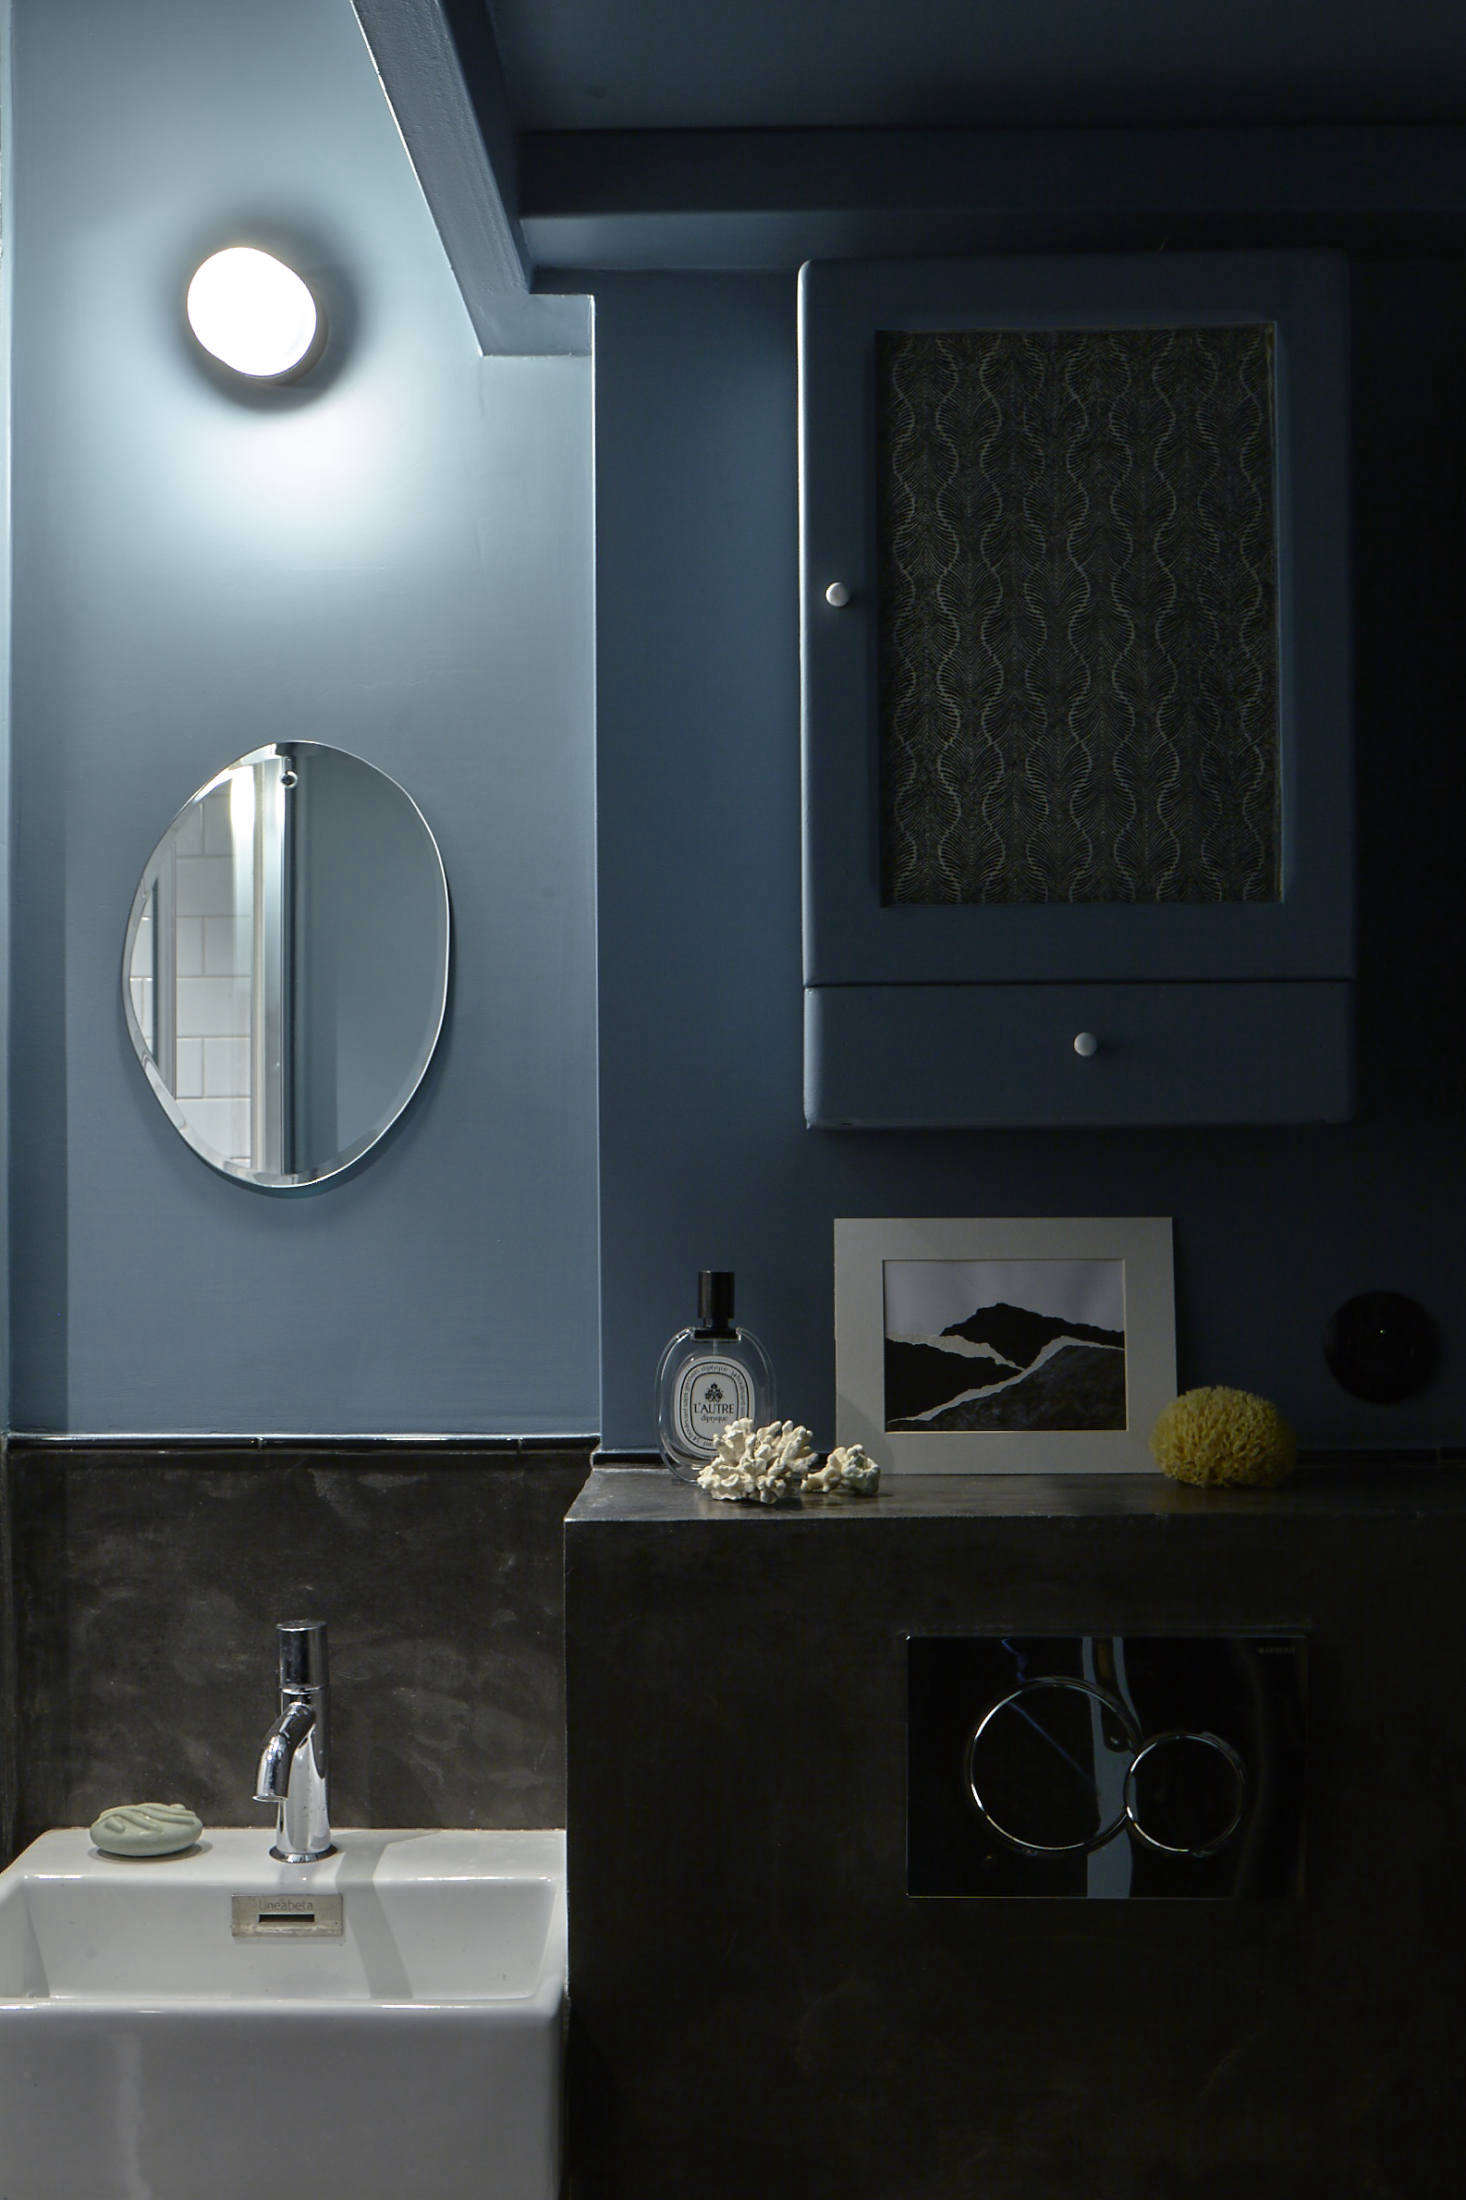 The bath, also in blue, with another whimsical mirror from M Nuance.